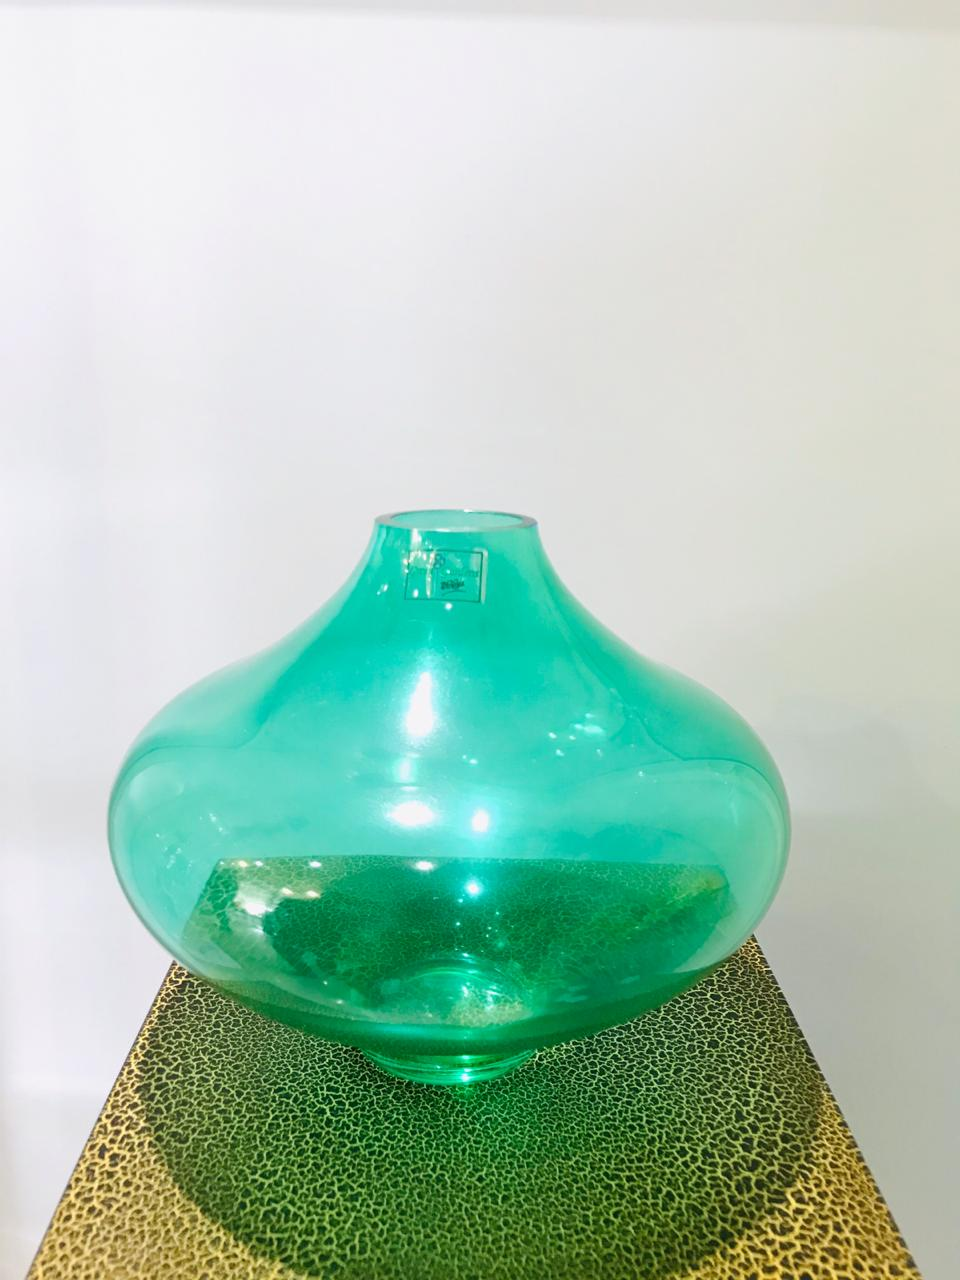 20cm Handblown Glassware - Green Gardens Mihiliya (Pvt) Ltd